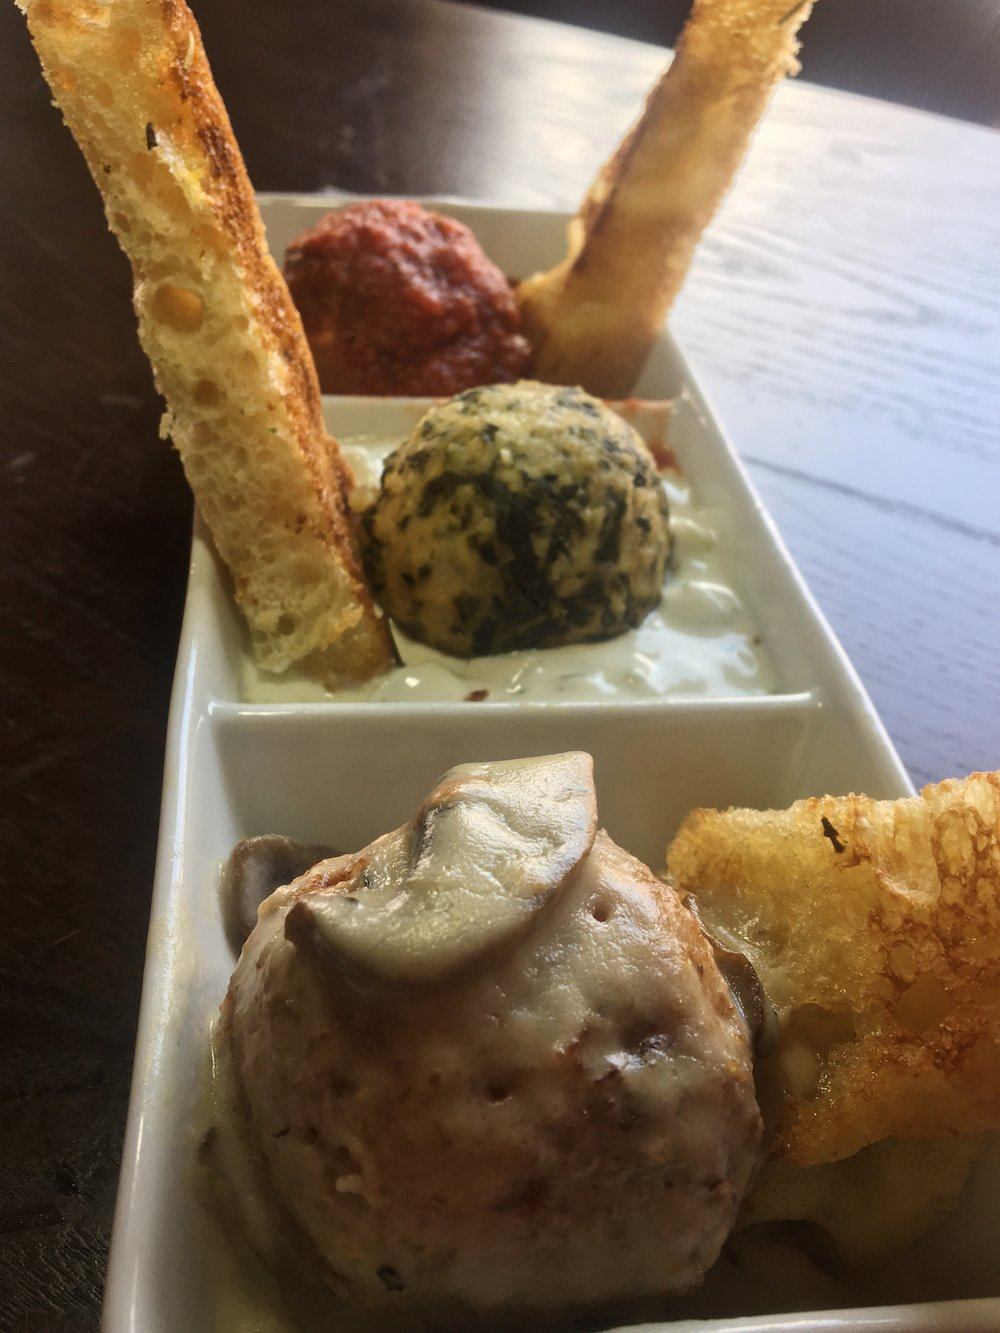 Front to back - Lobster Risotto Ball, Chicken Ball, Classic Meatball